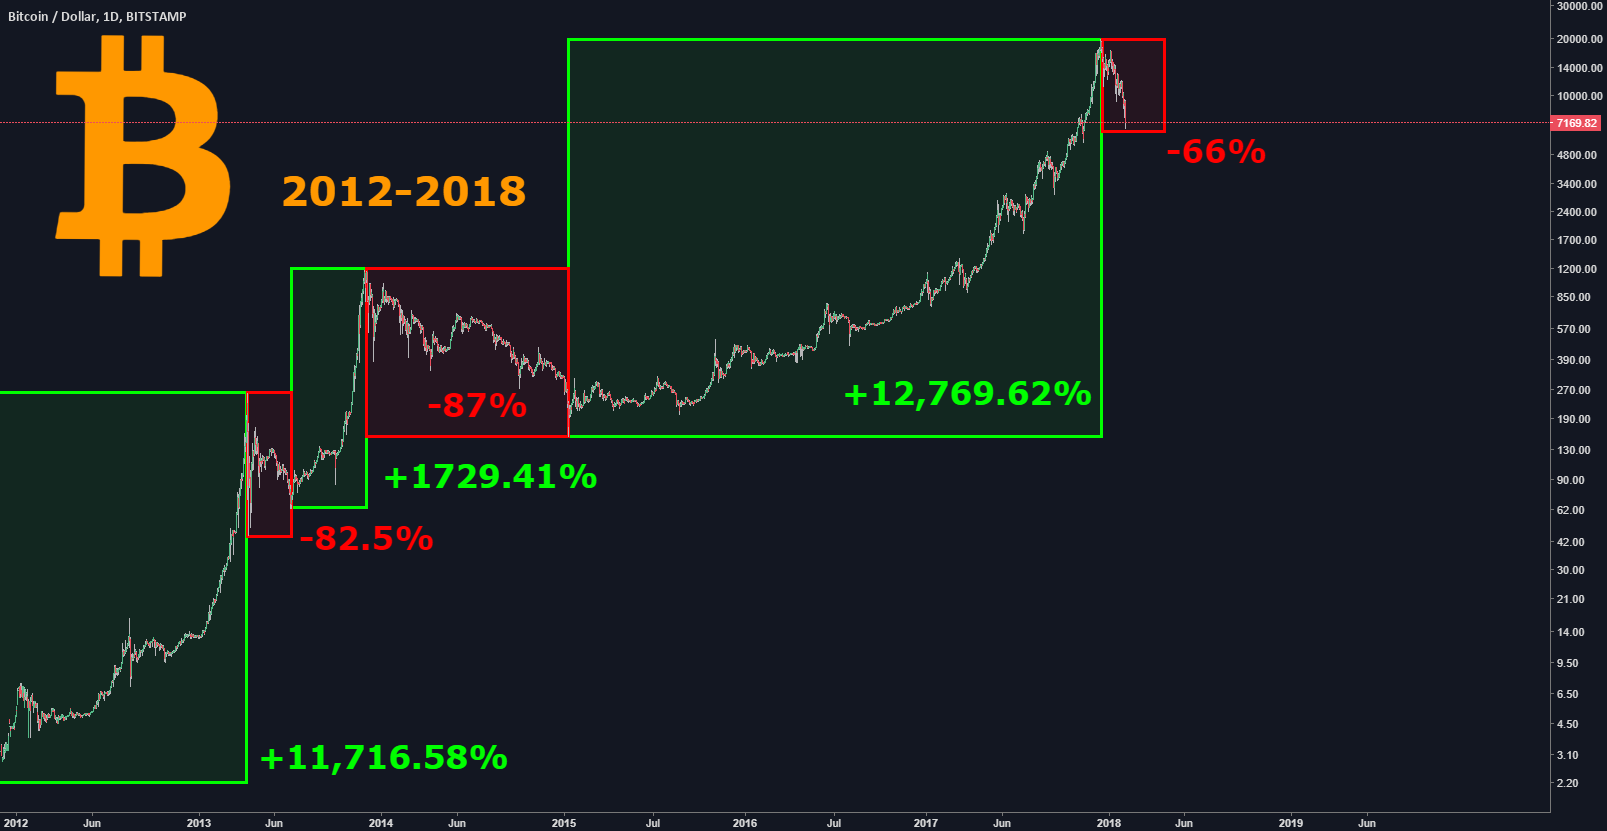 Bitcoin - 2012-2018 Dominance of Bulls